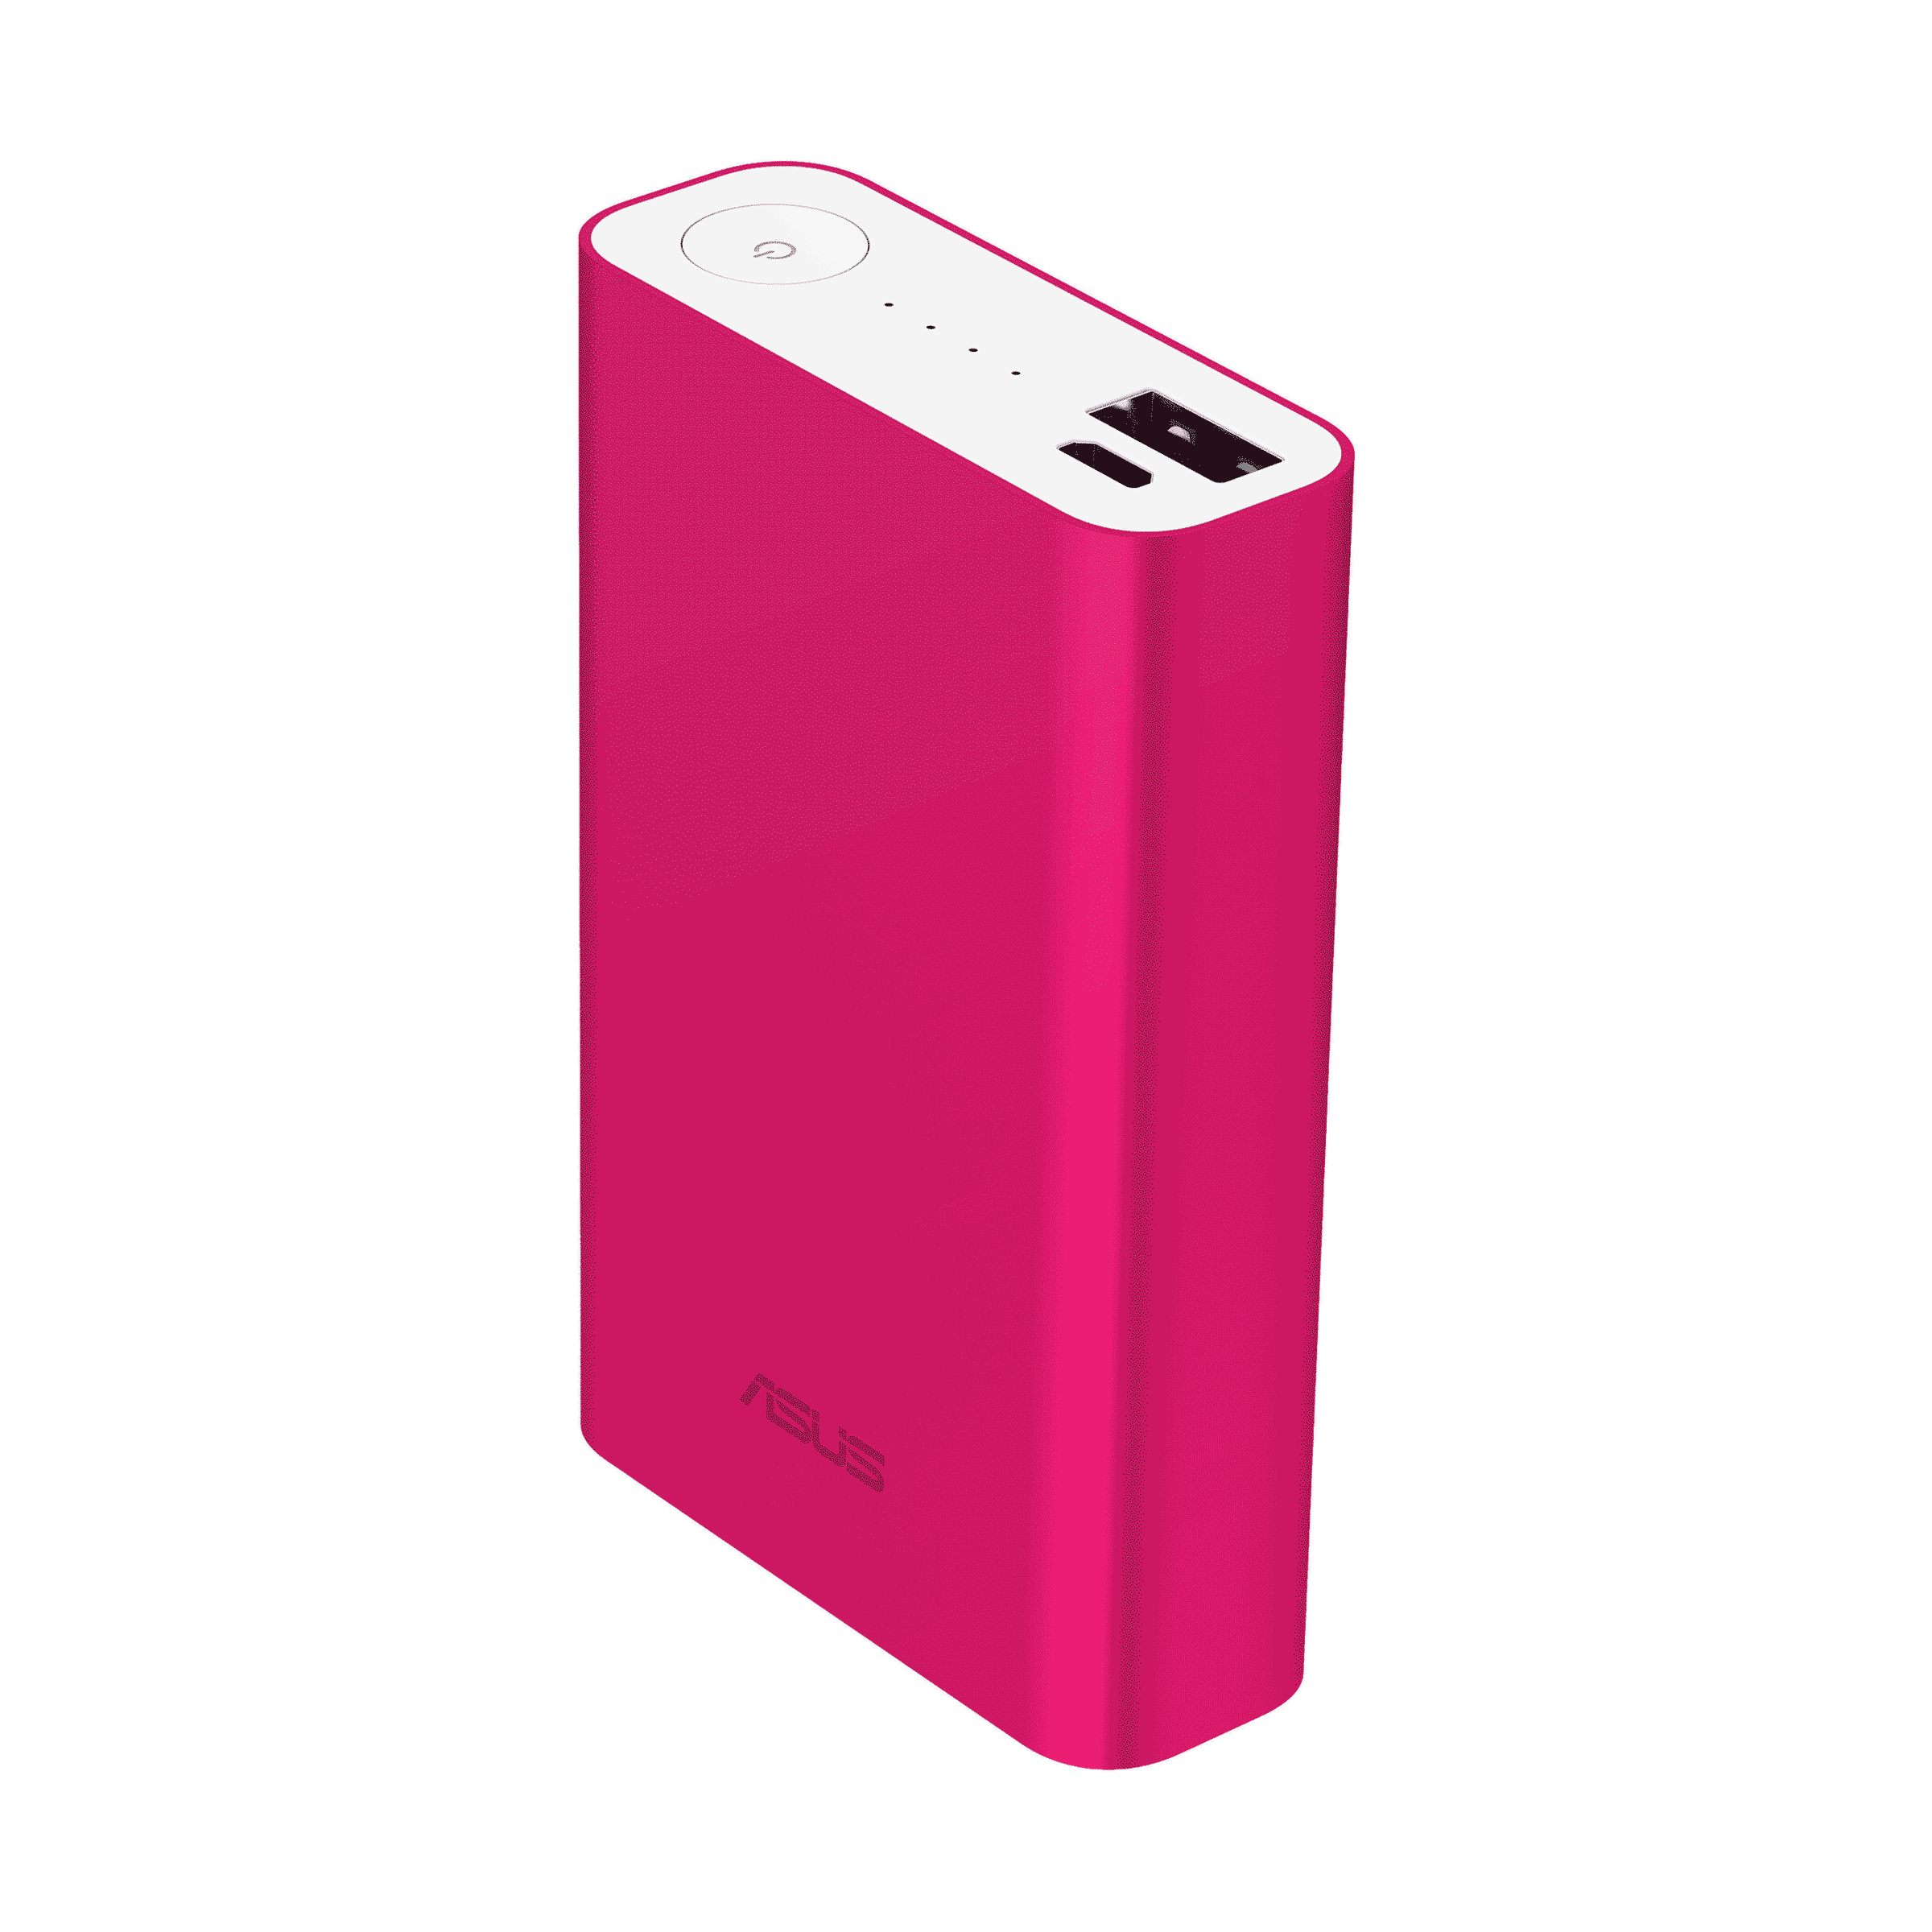 Asus ZenPower Power Bank 10050mAh USB @ 2.4A Pink | Lightweight and Powerful | Credit Card Size